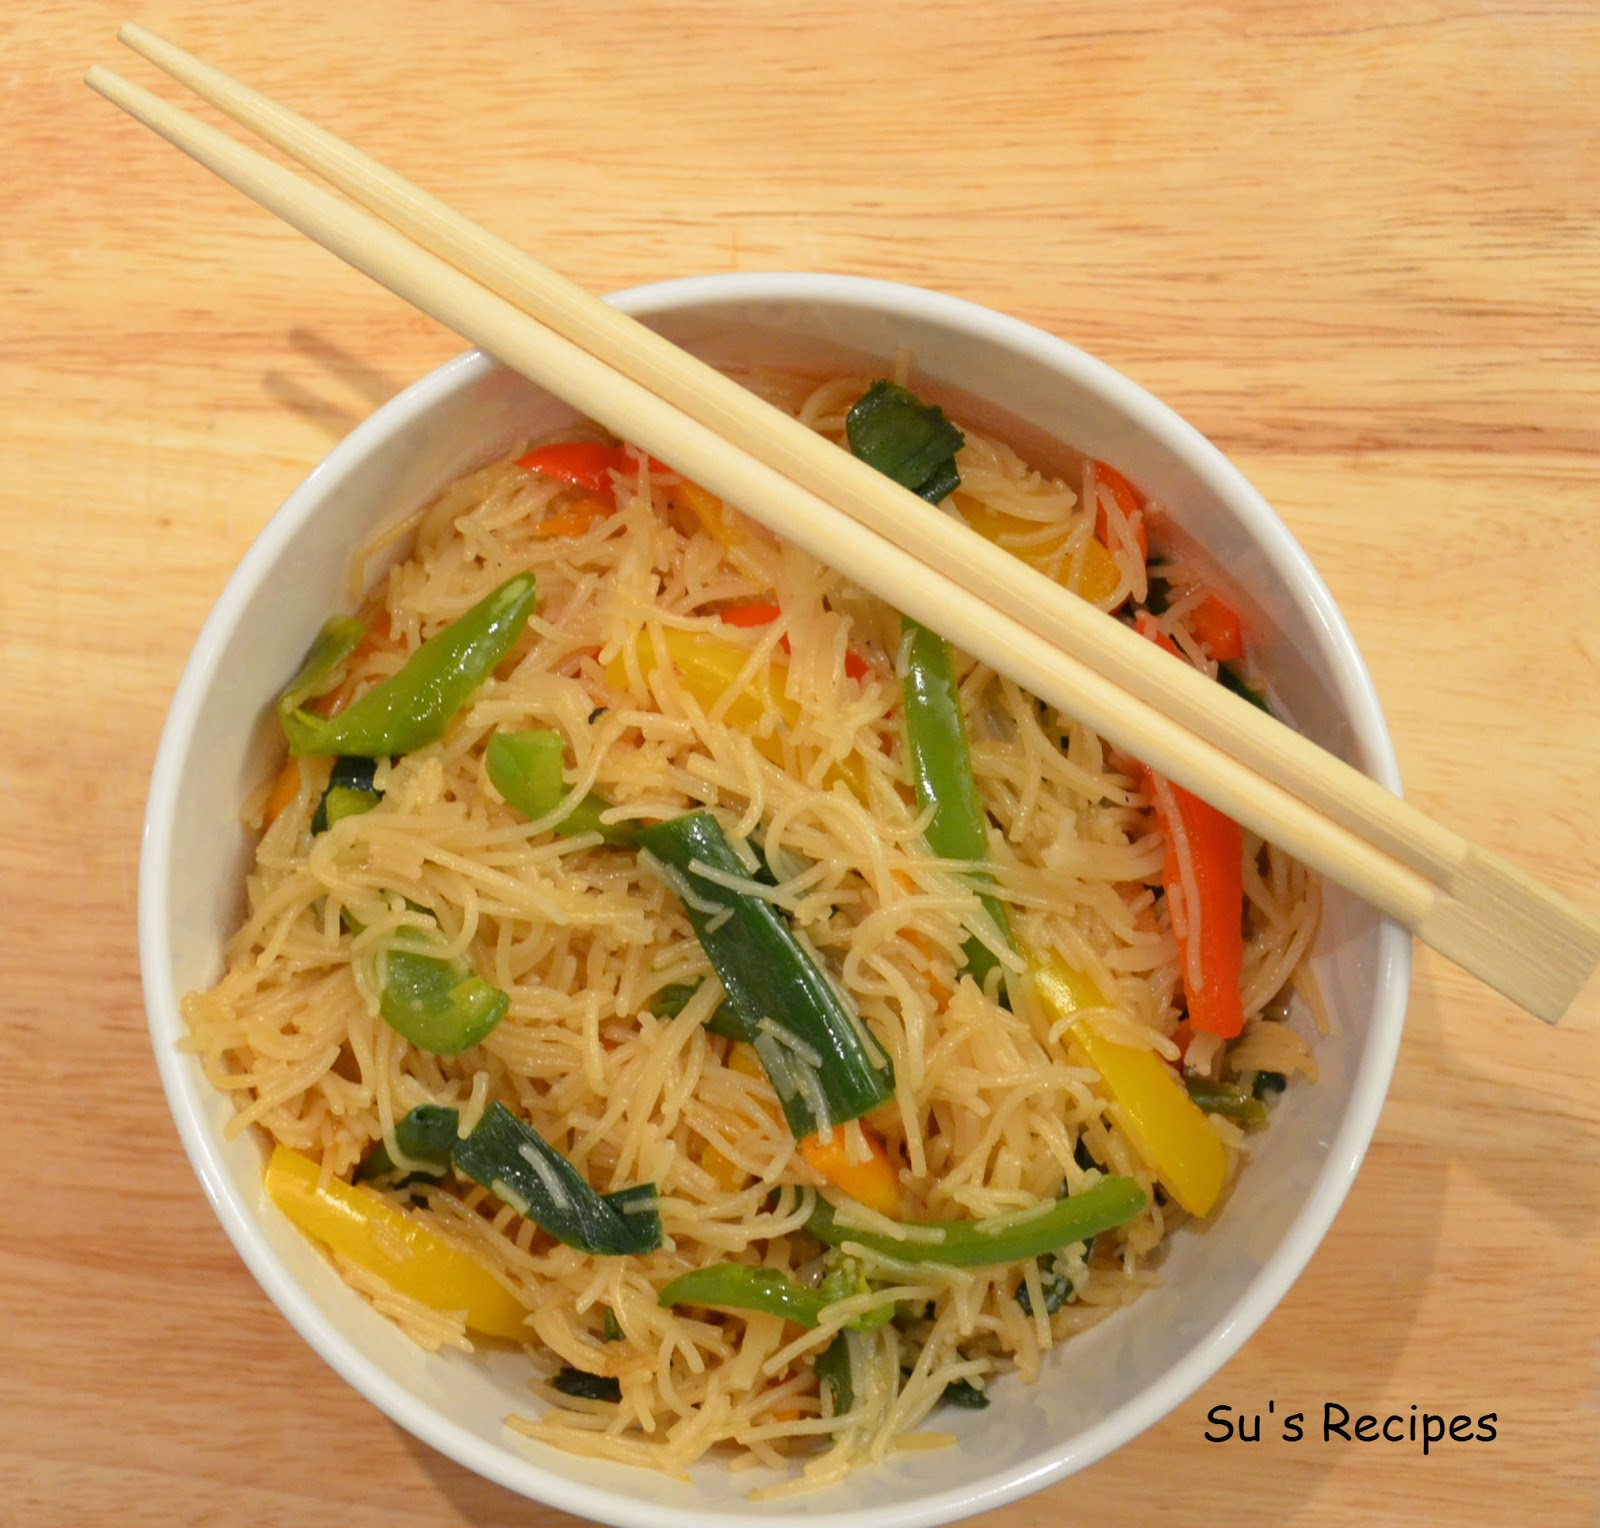 Su's Recipes: Stir Fry Vegetable Rice Noodles